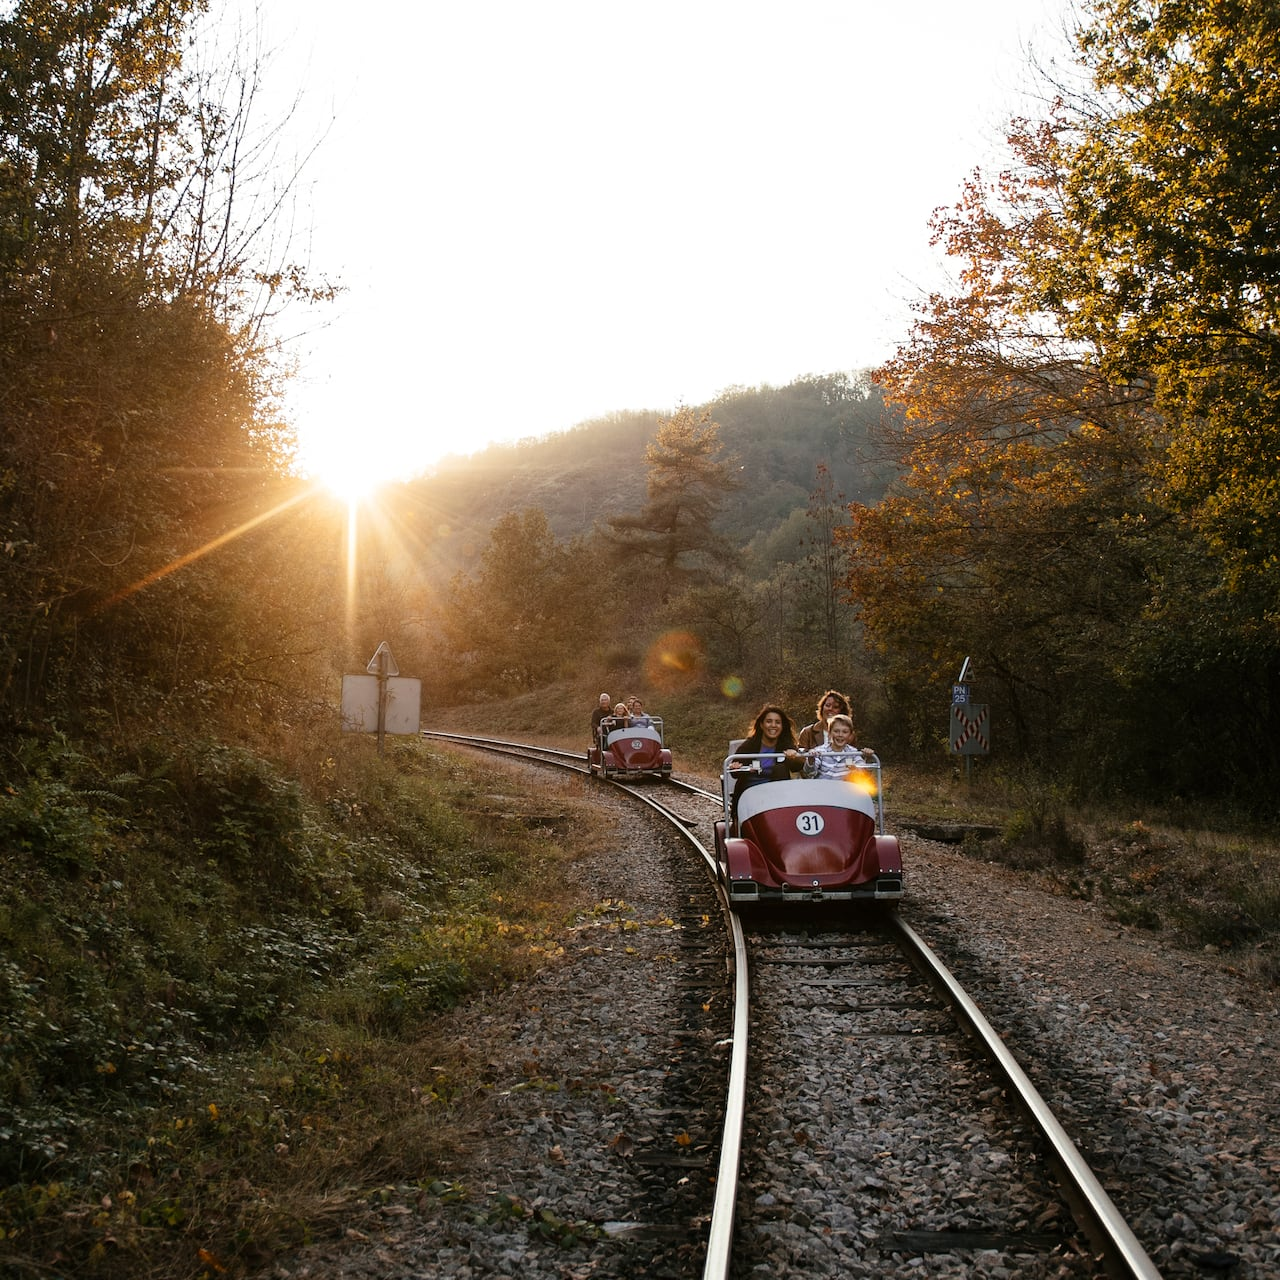 Two rail cars ride along the Vavarais Railway tracks at sunset